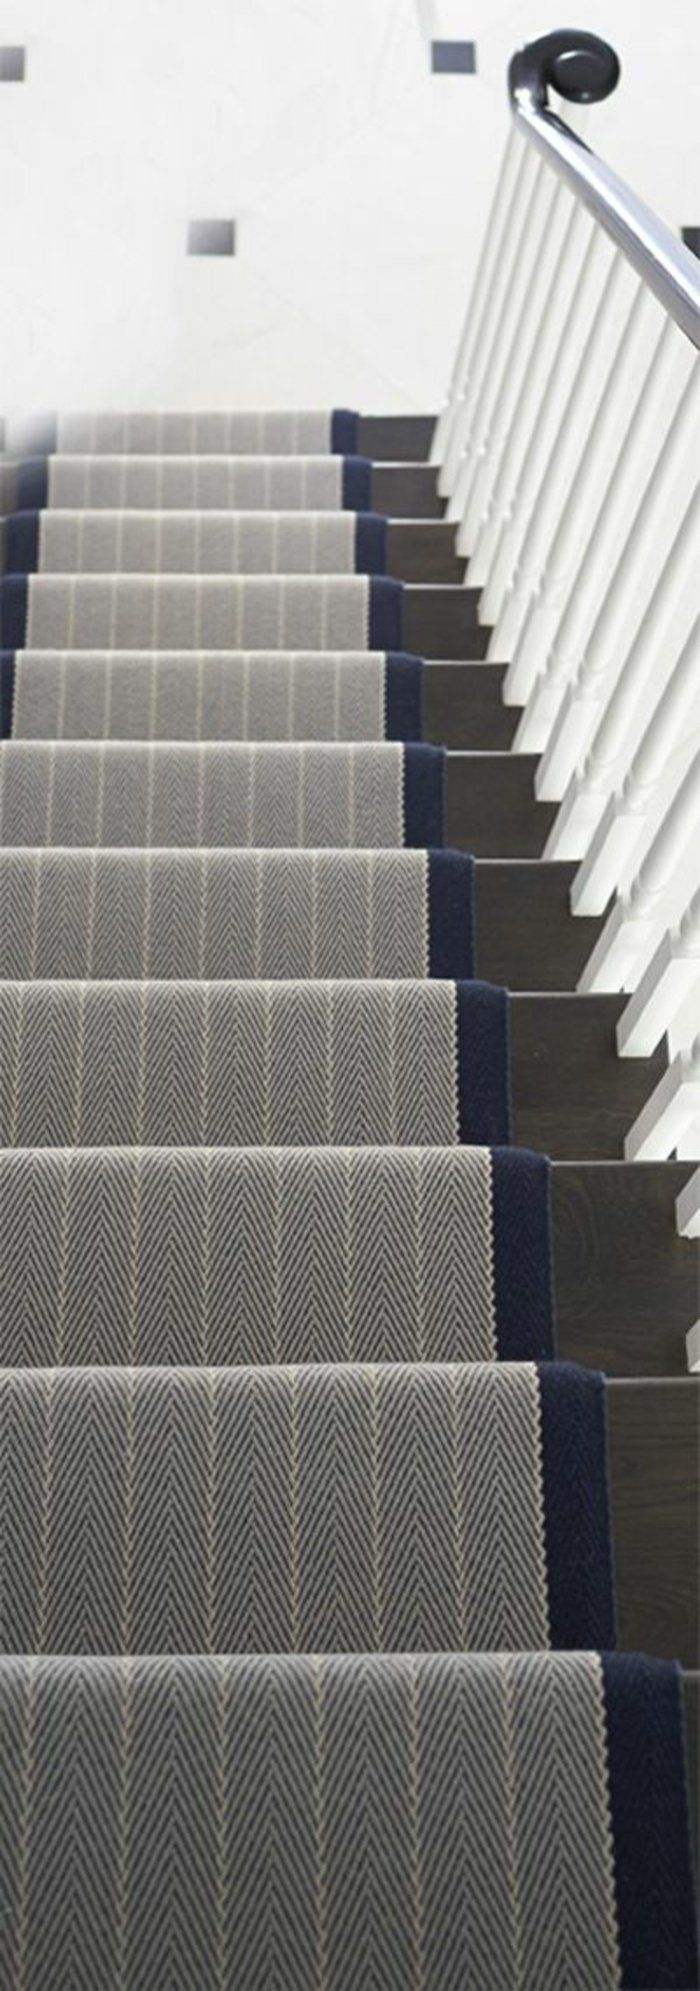 Le tapis pour escalier en 52 photos inspirantes saints for Moquette saint maclou